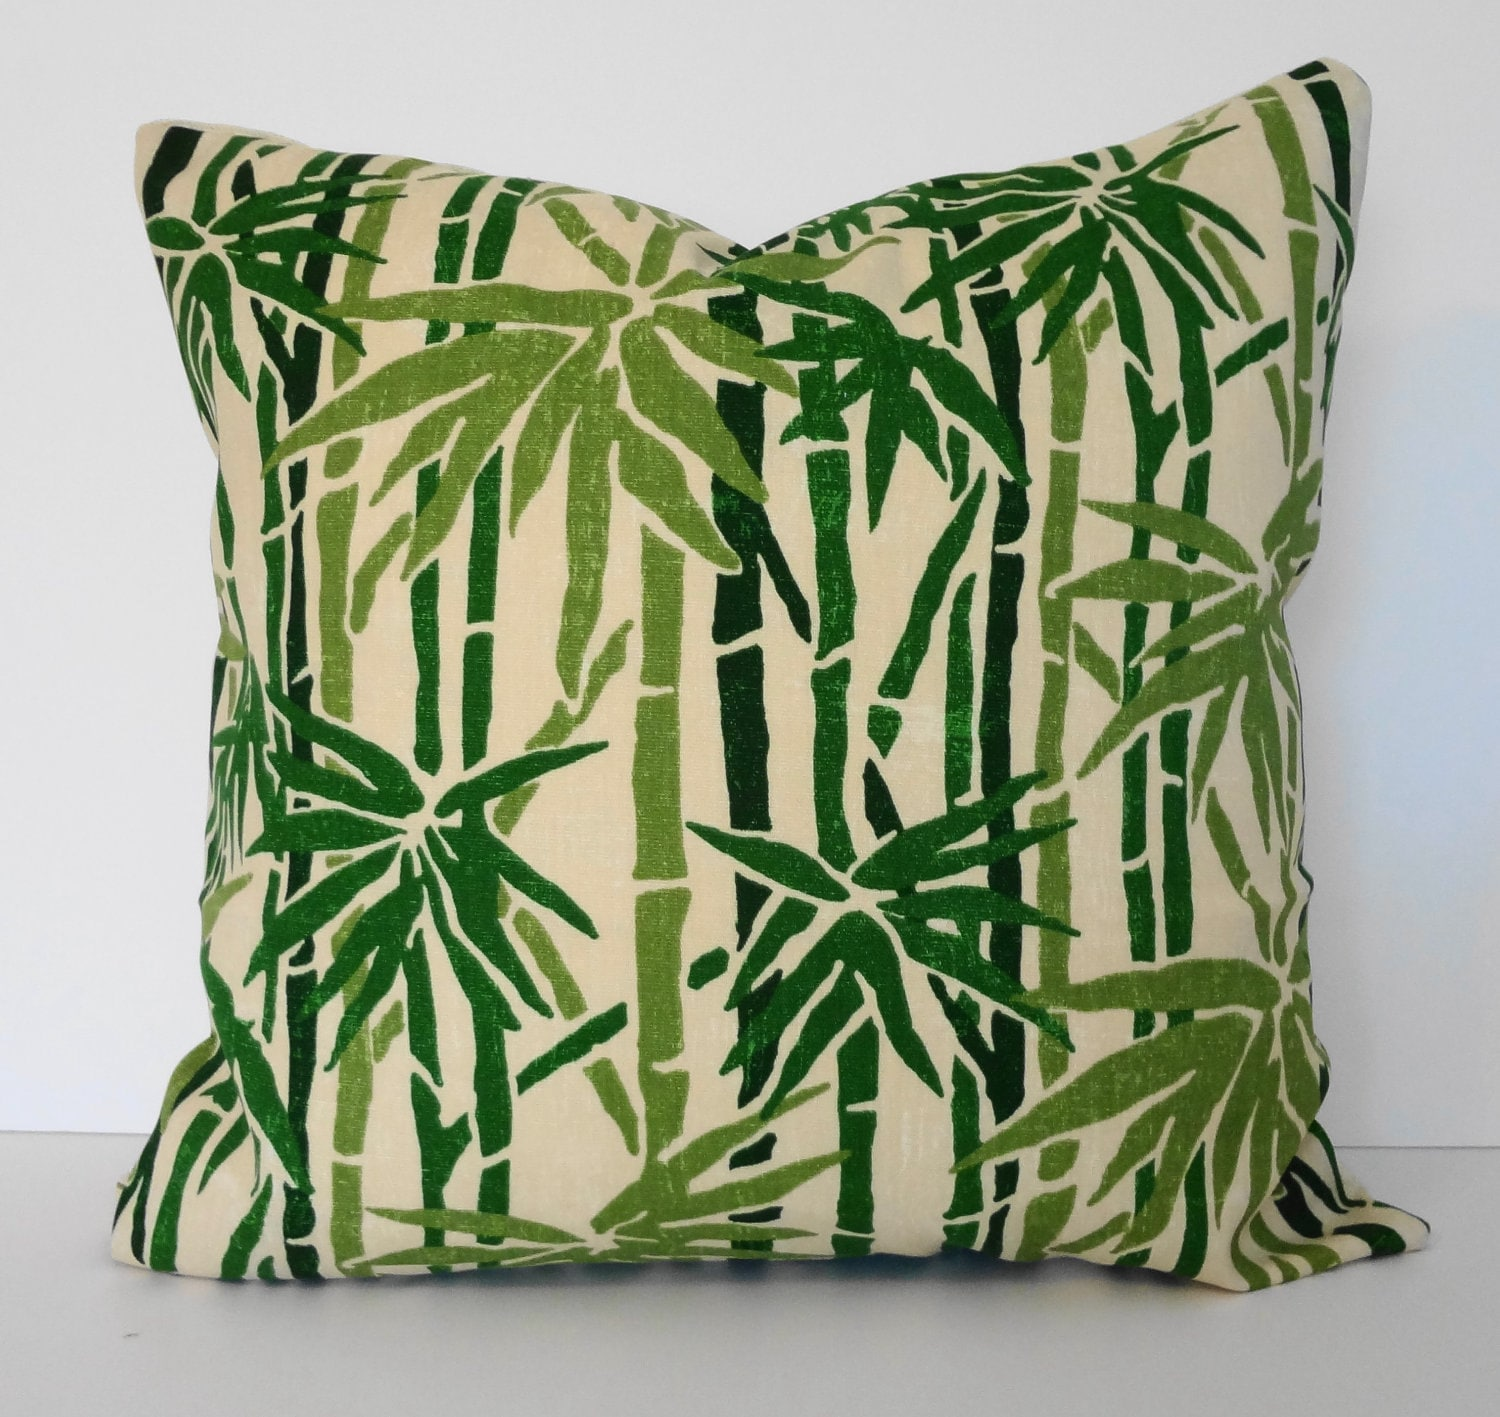 Decorative Pillow Palm Tree : Green Palm Trees Decorative Pillow Covers Duralee Fabrics